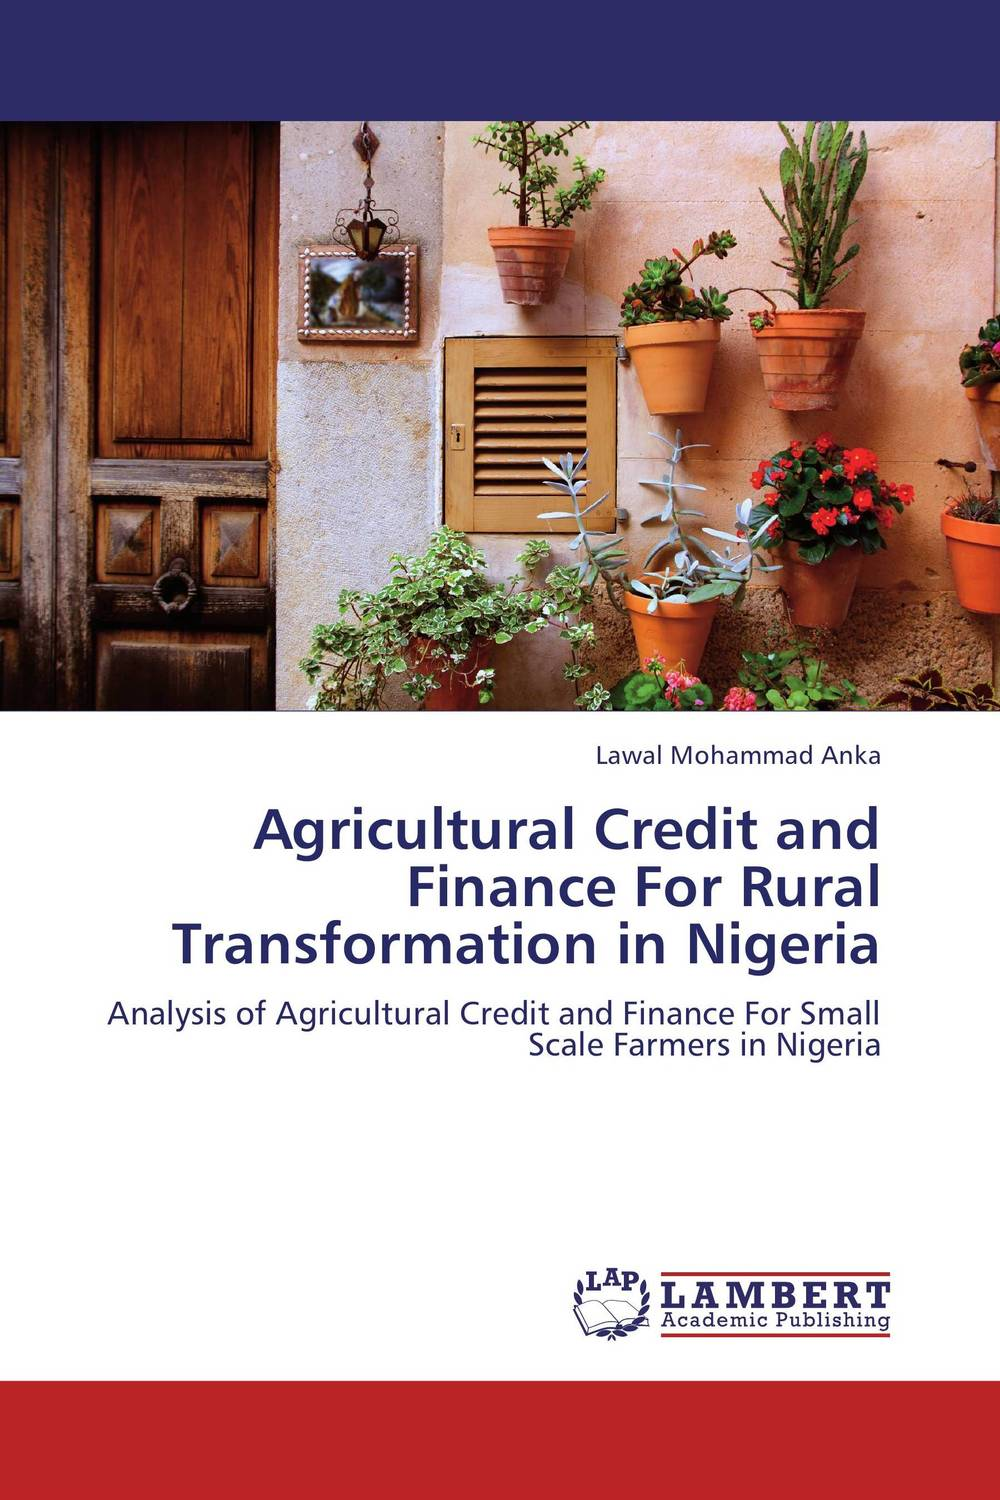 Agricultural Credit and Finance For Rural Transformation in Nigeria jaynal ud din ahmed and mohd abdul rashid institutional finance for micro and small entreprises in india